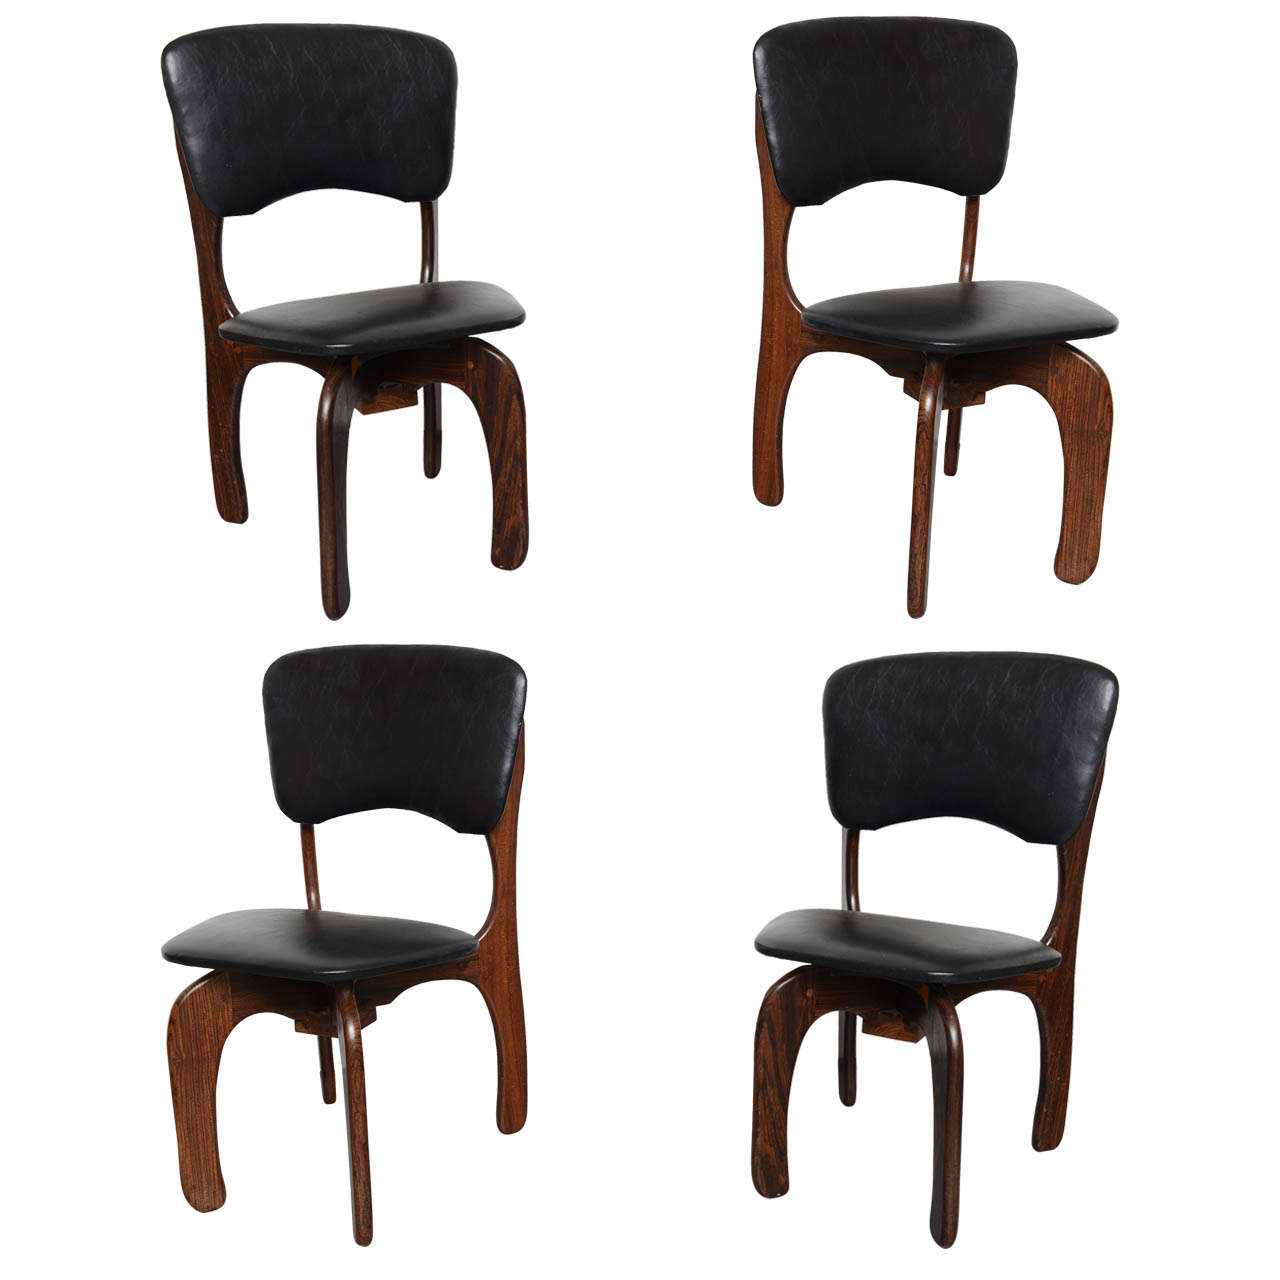 1970s Rosewood Chairs by Don Shoemaker, Mexico For Sale